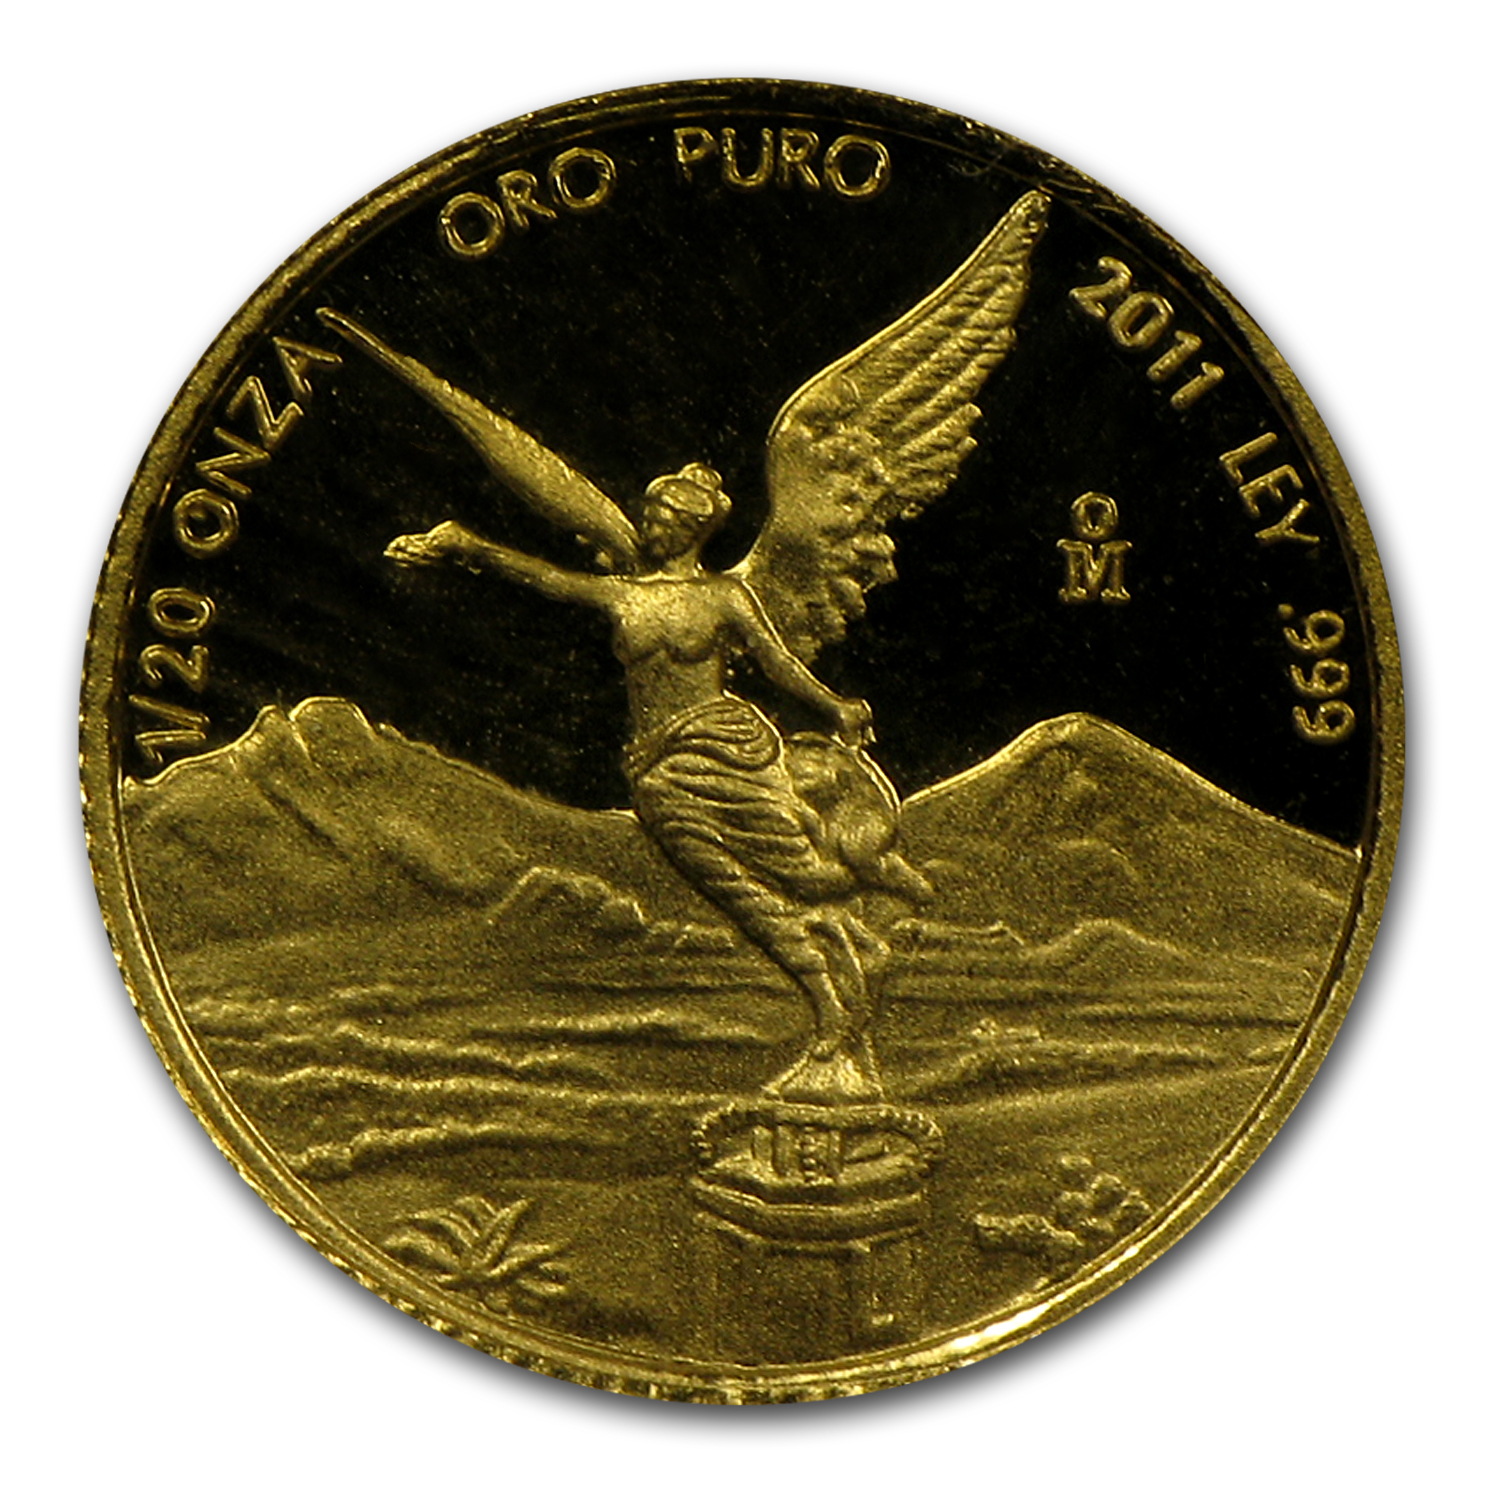 2011 Mexico 1/20 oz Proof Gold Libertad